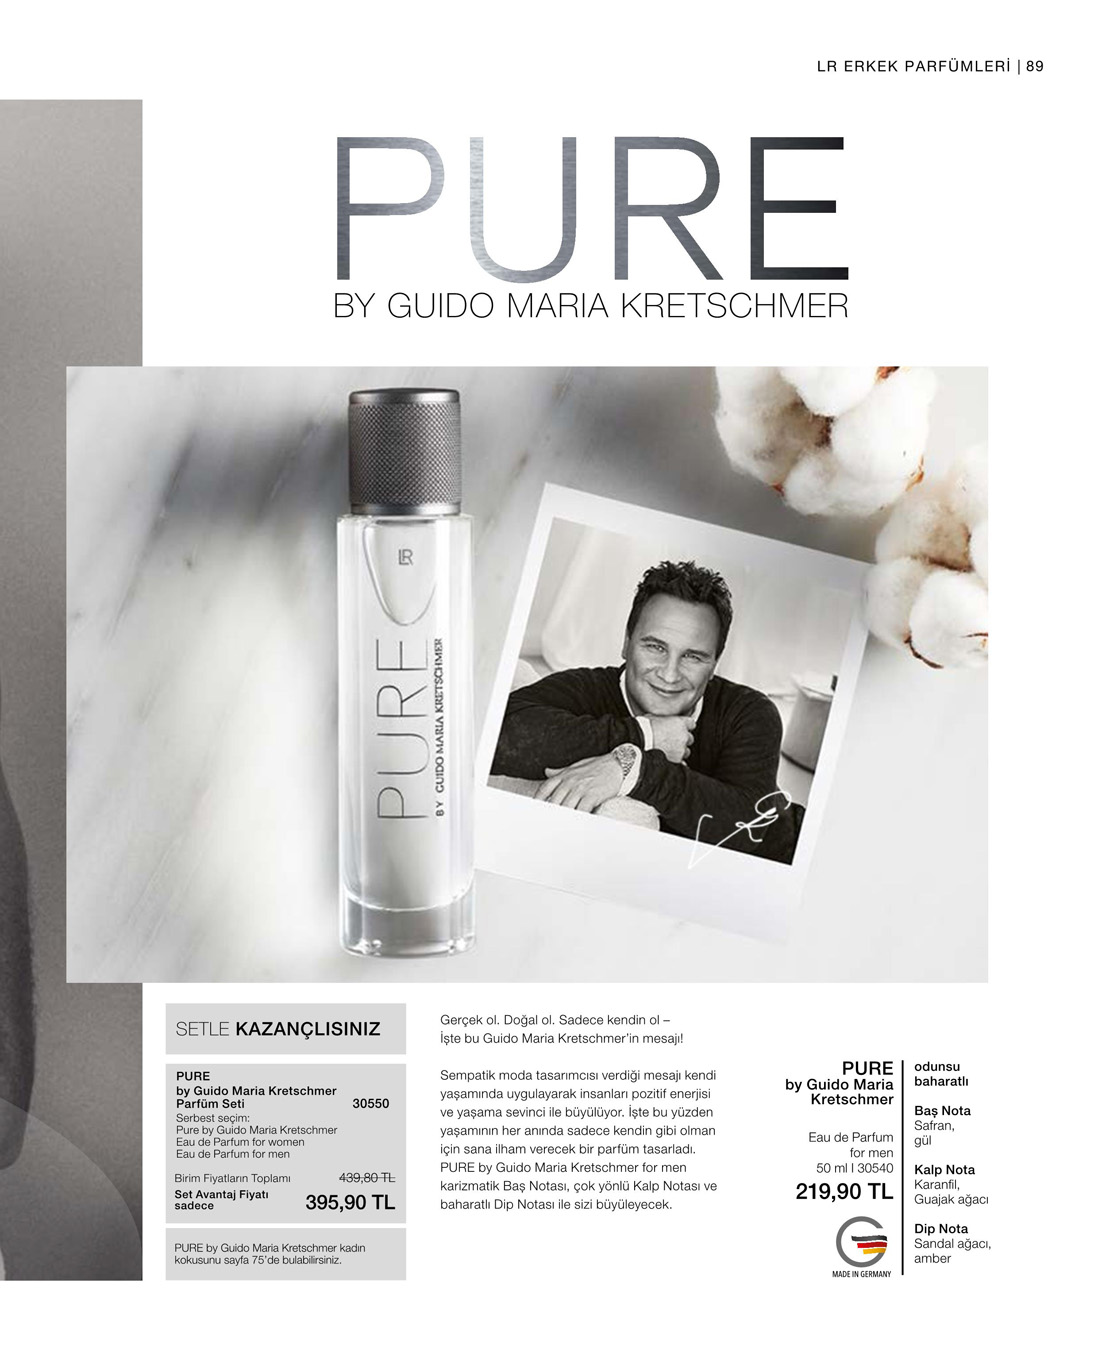 LR PURE by Guido Maria Kretschmer for men EdP  katalog